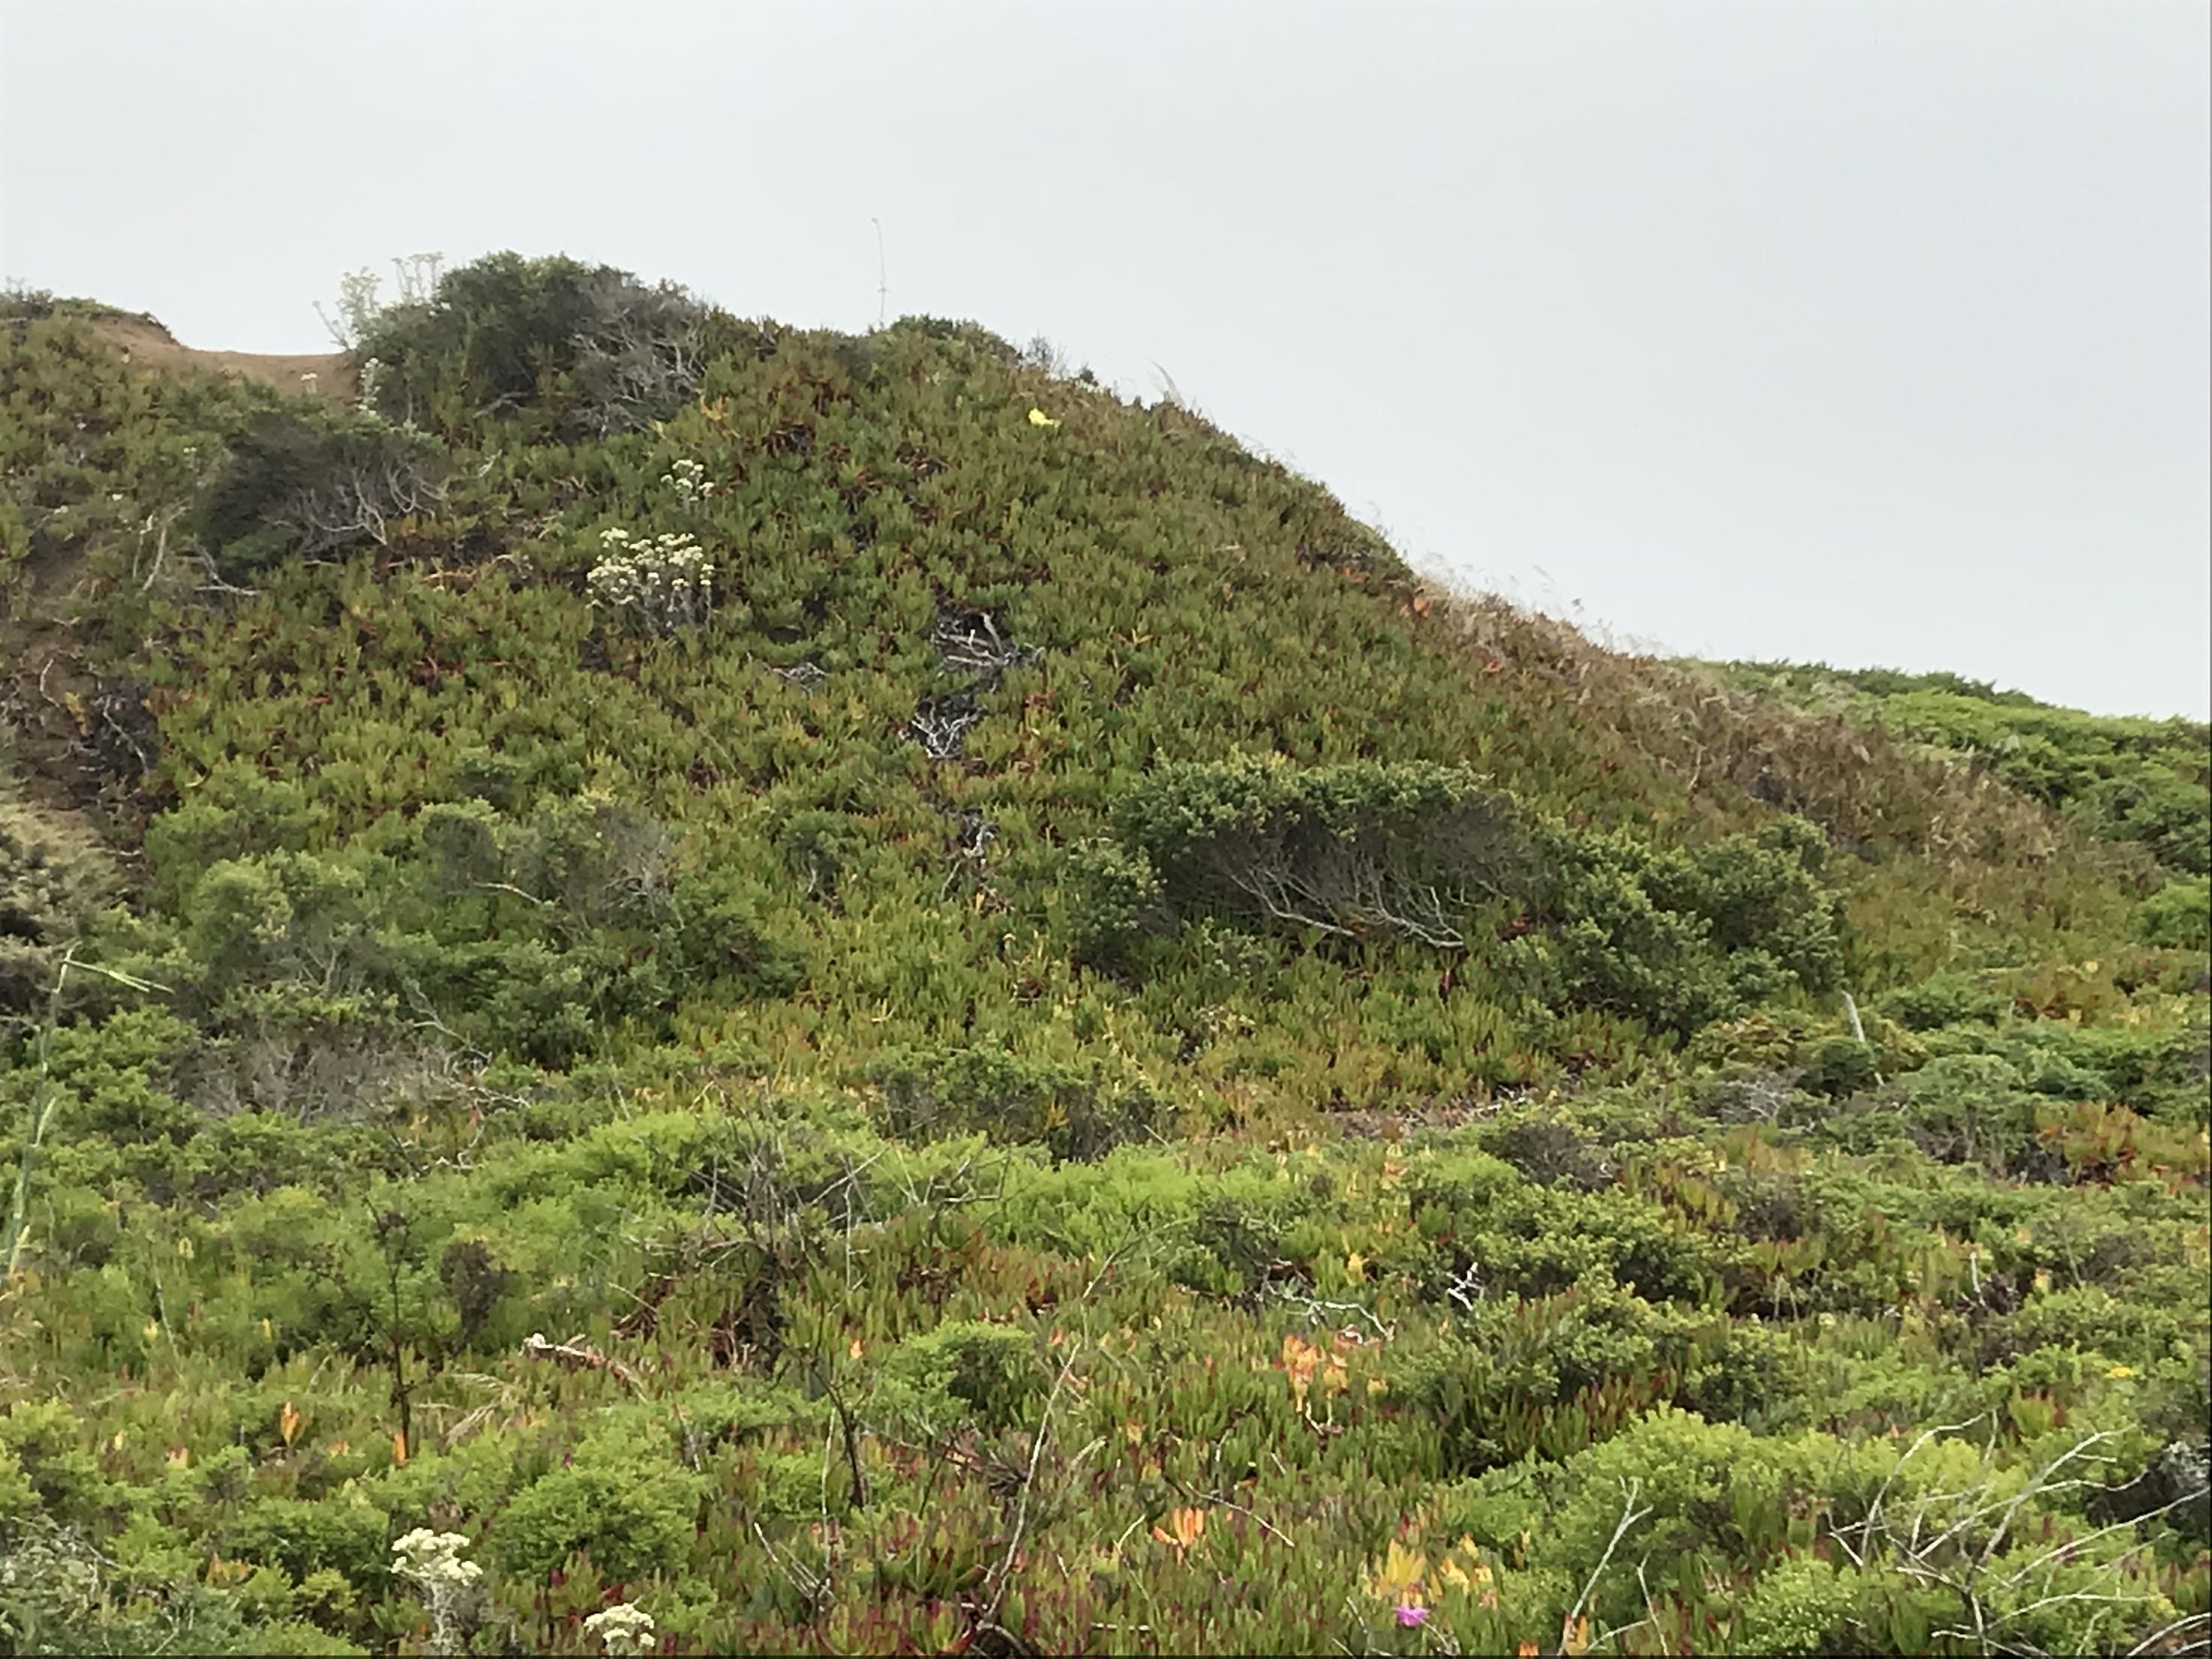 A view at Headlands from a recent hike outside my studio on a foggy day.